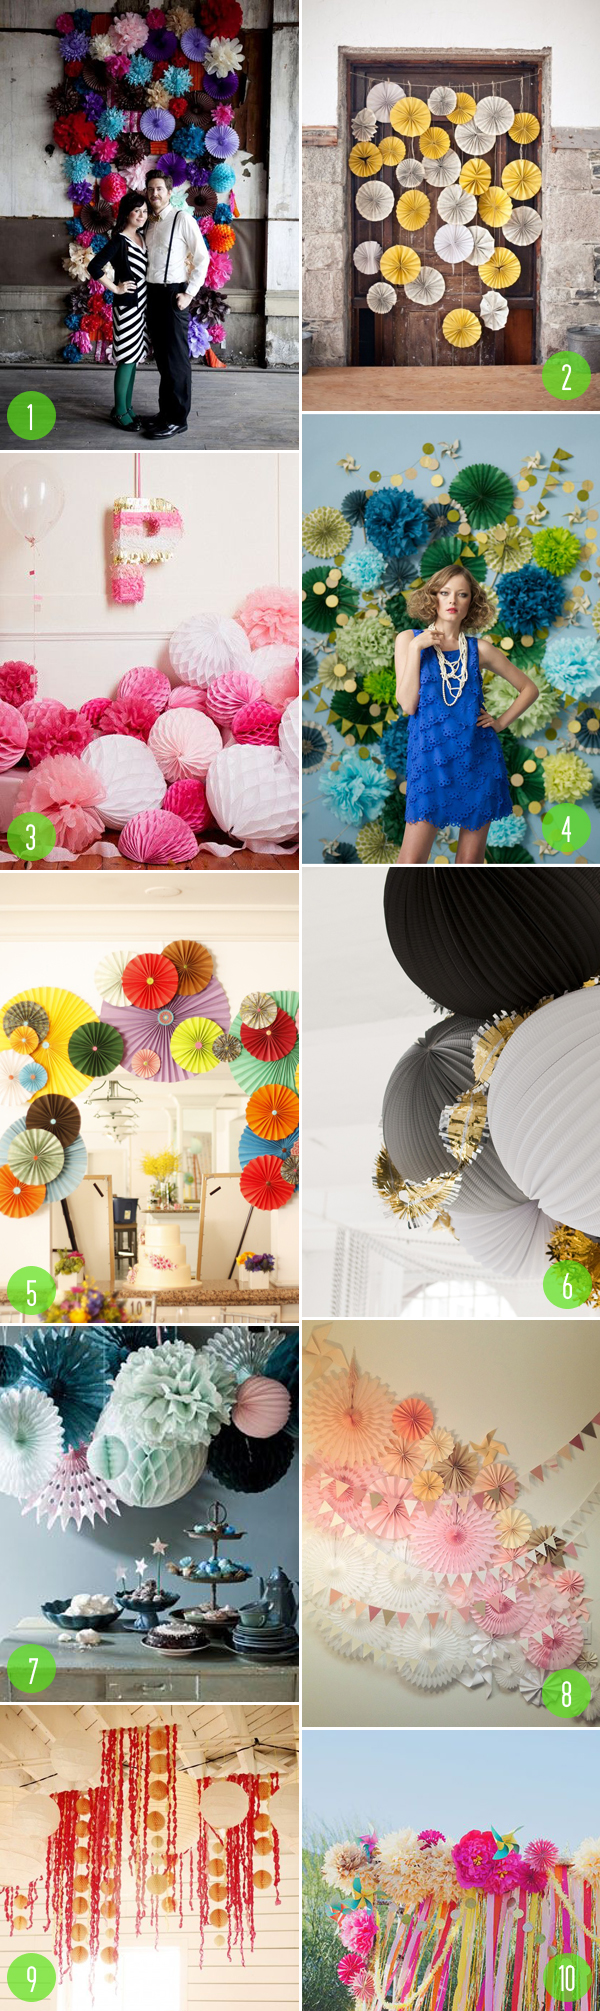 pompoms & fans in weddings